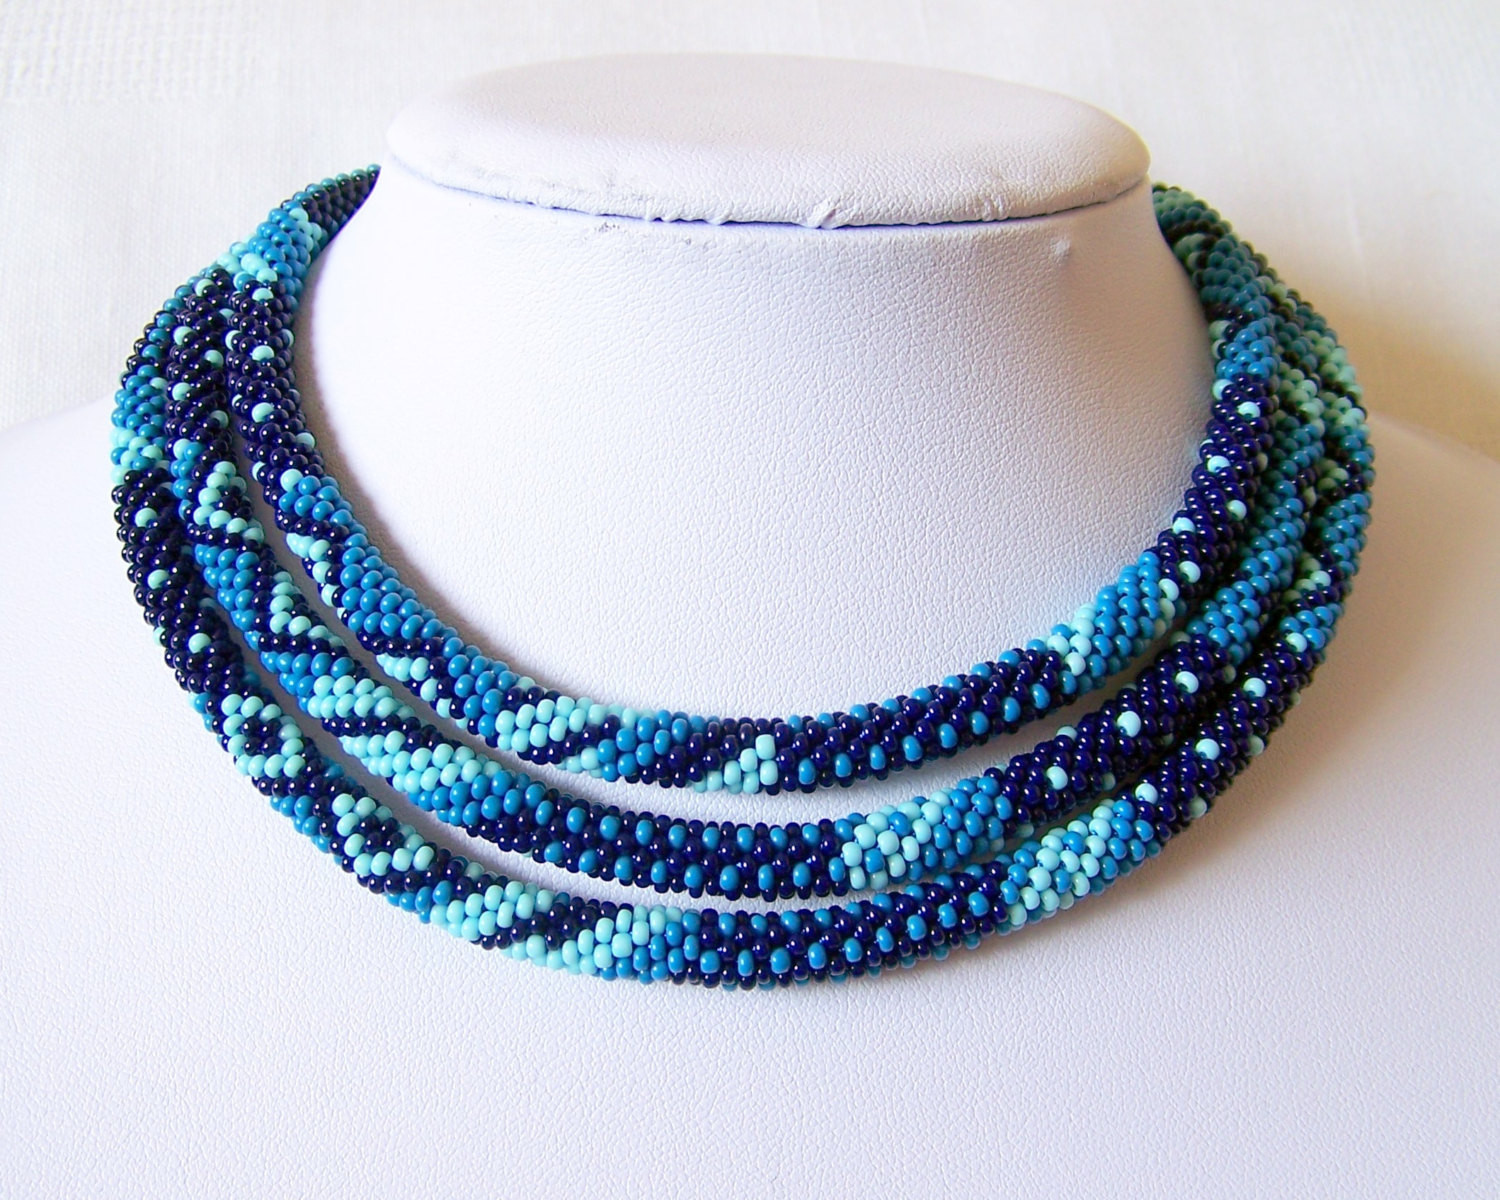 Bead Crochet Rope New Long Beaded Crochet Rope Necklace Beadwork Seed Beads by Of Attractive 50 Images Bead Crochet Rope